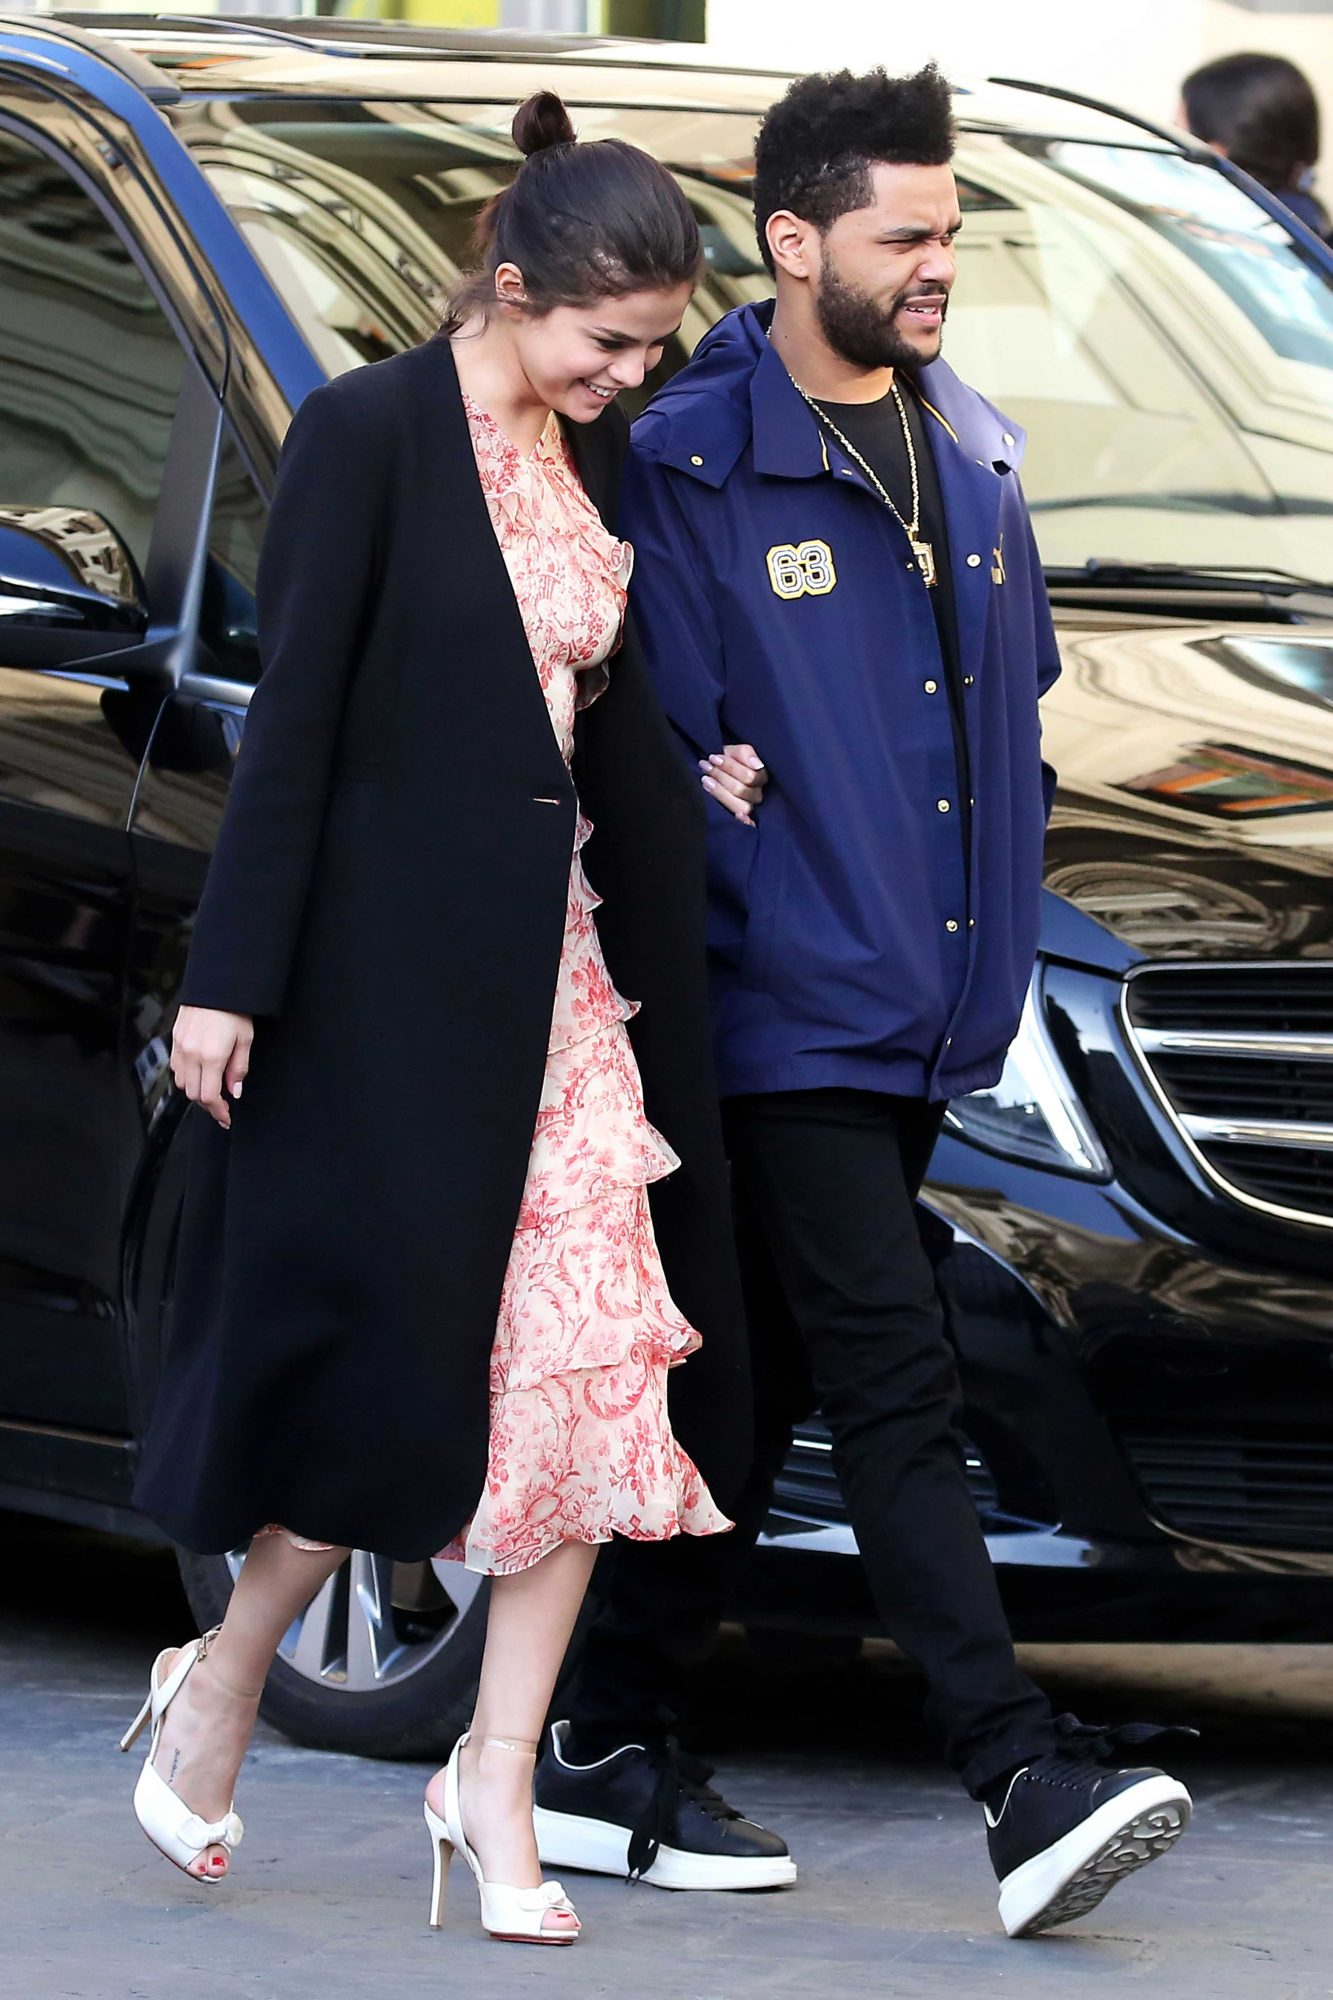 AG_165633 - ** RESTRICTIONS: NO WEB - ONLY UNITED STATES, CANADA ** Florence, ITALY - *PREMIUM-EXCLUSIVE* - **NO WEB UNTIL 1:00PM PST 1/28/17** *PREMIUM EXCLUSIVE* Florence, Italy - Hot new couple Selena Gomez and The Weeknd cuddle up as they take a tour in the Accademia Gallery Museum to look at the historic art on display. The hot new couple were seen looking in awe of Michelangelo's famous David Statue in the flesh. Selena held on tight to The Weeknd's arm through out the visit and appear to be in the honey moon stage of their relationship.